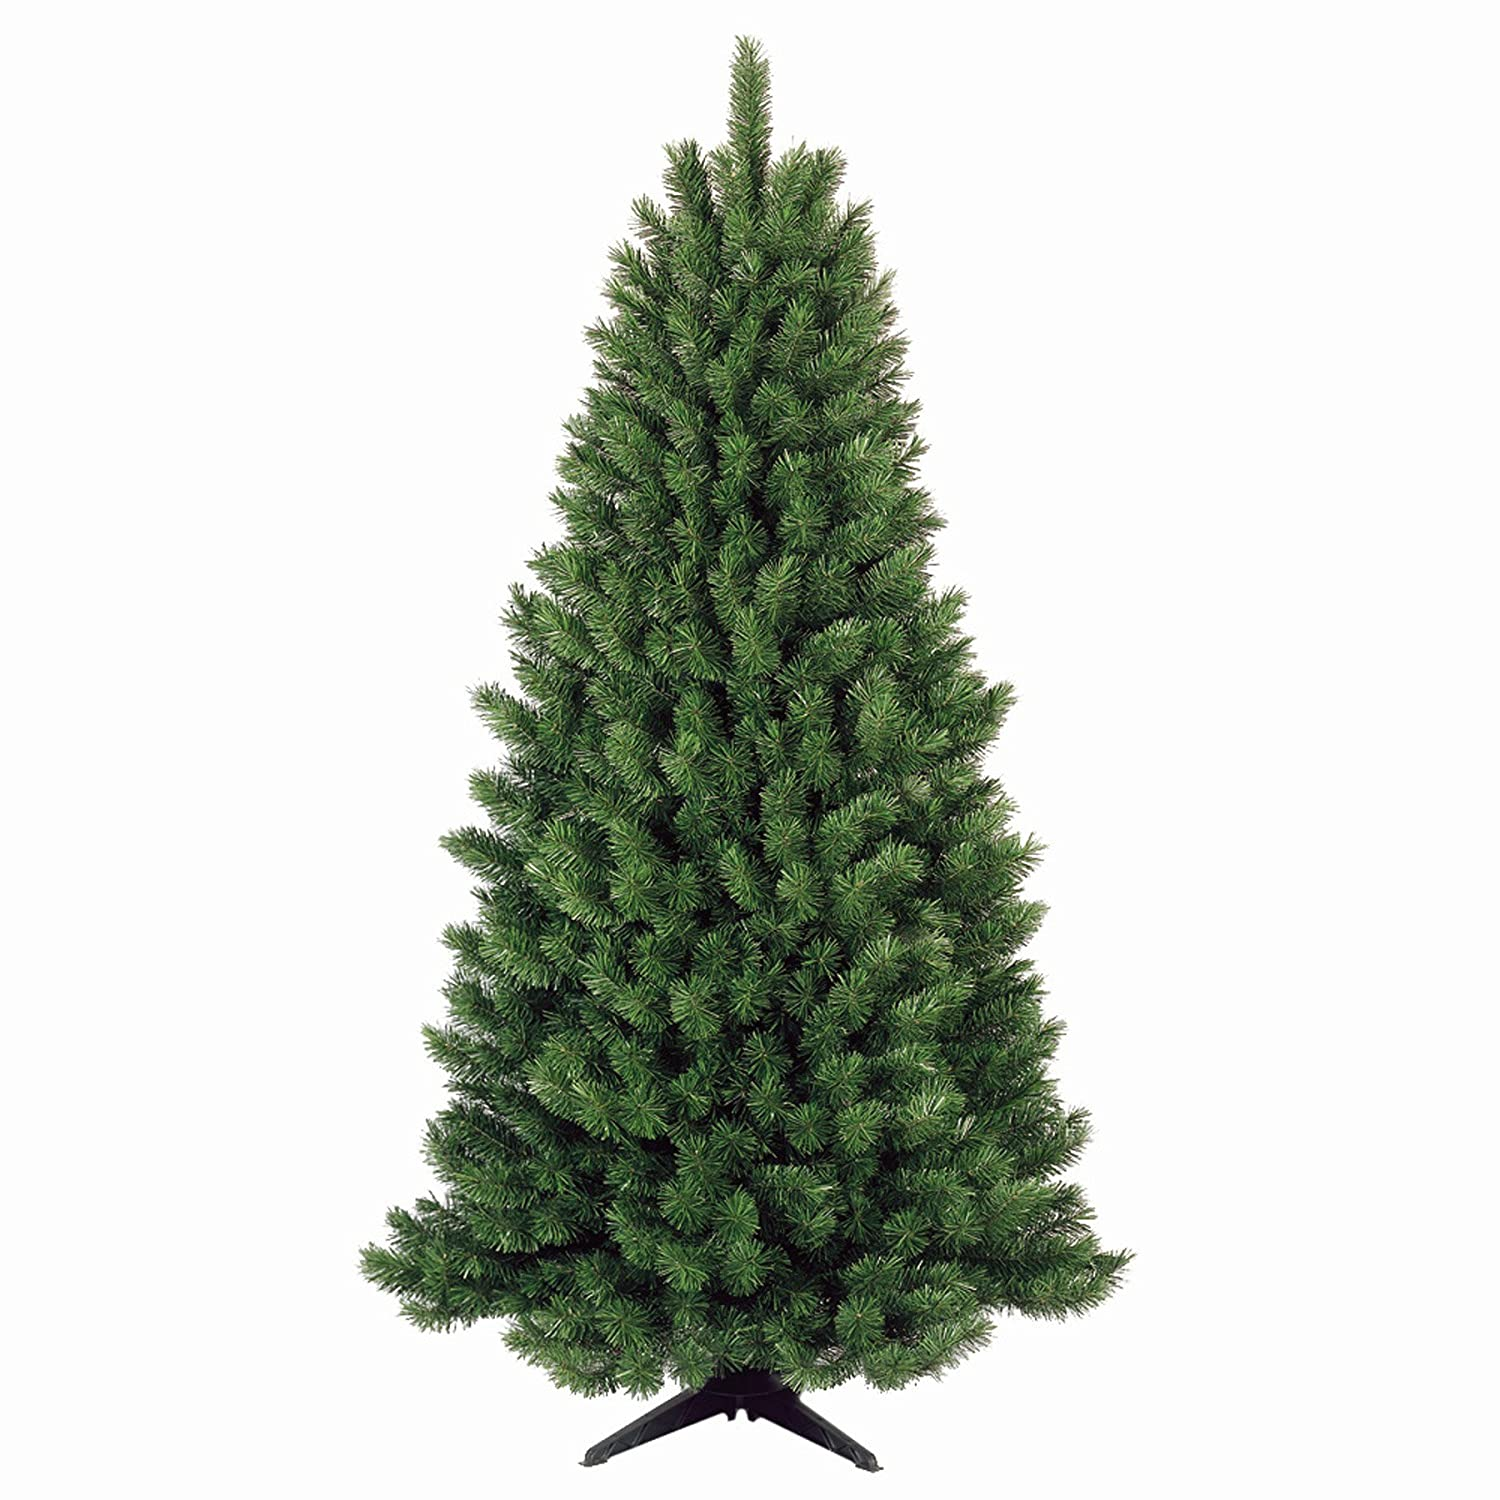 Amazoncom General Foam Plastics Half Christmas Tree, 65 Feet Garden &